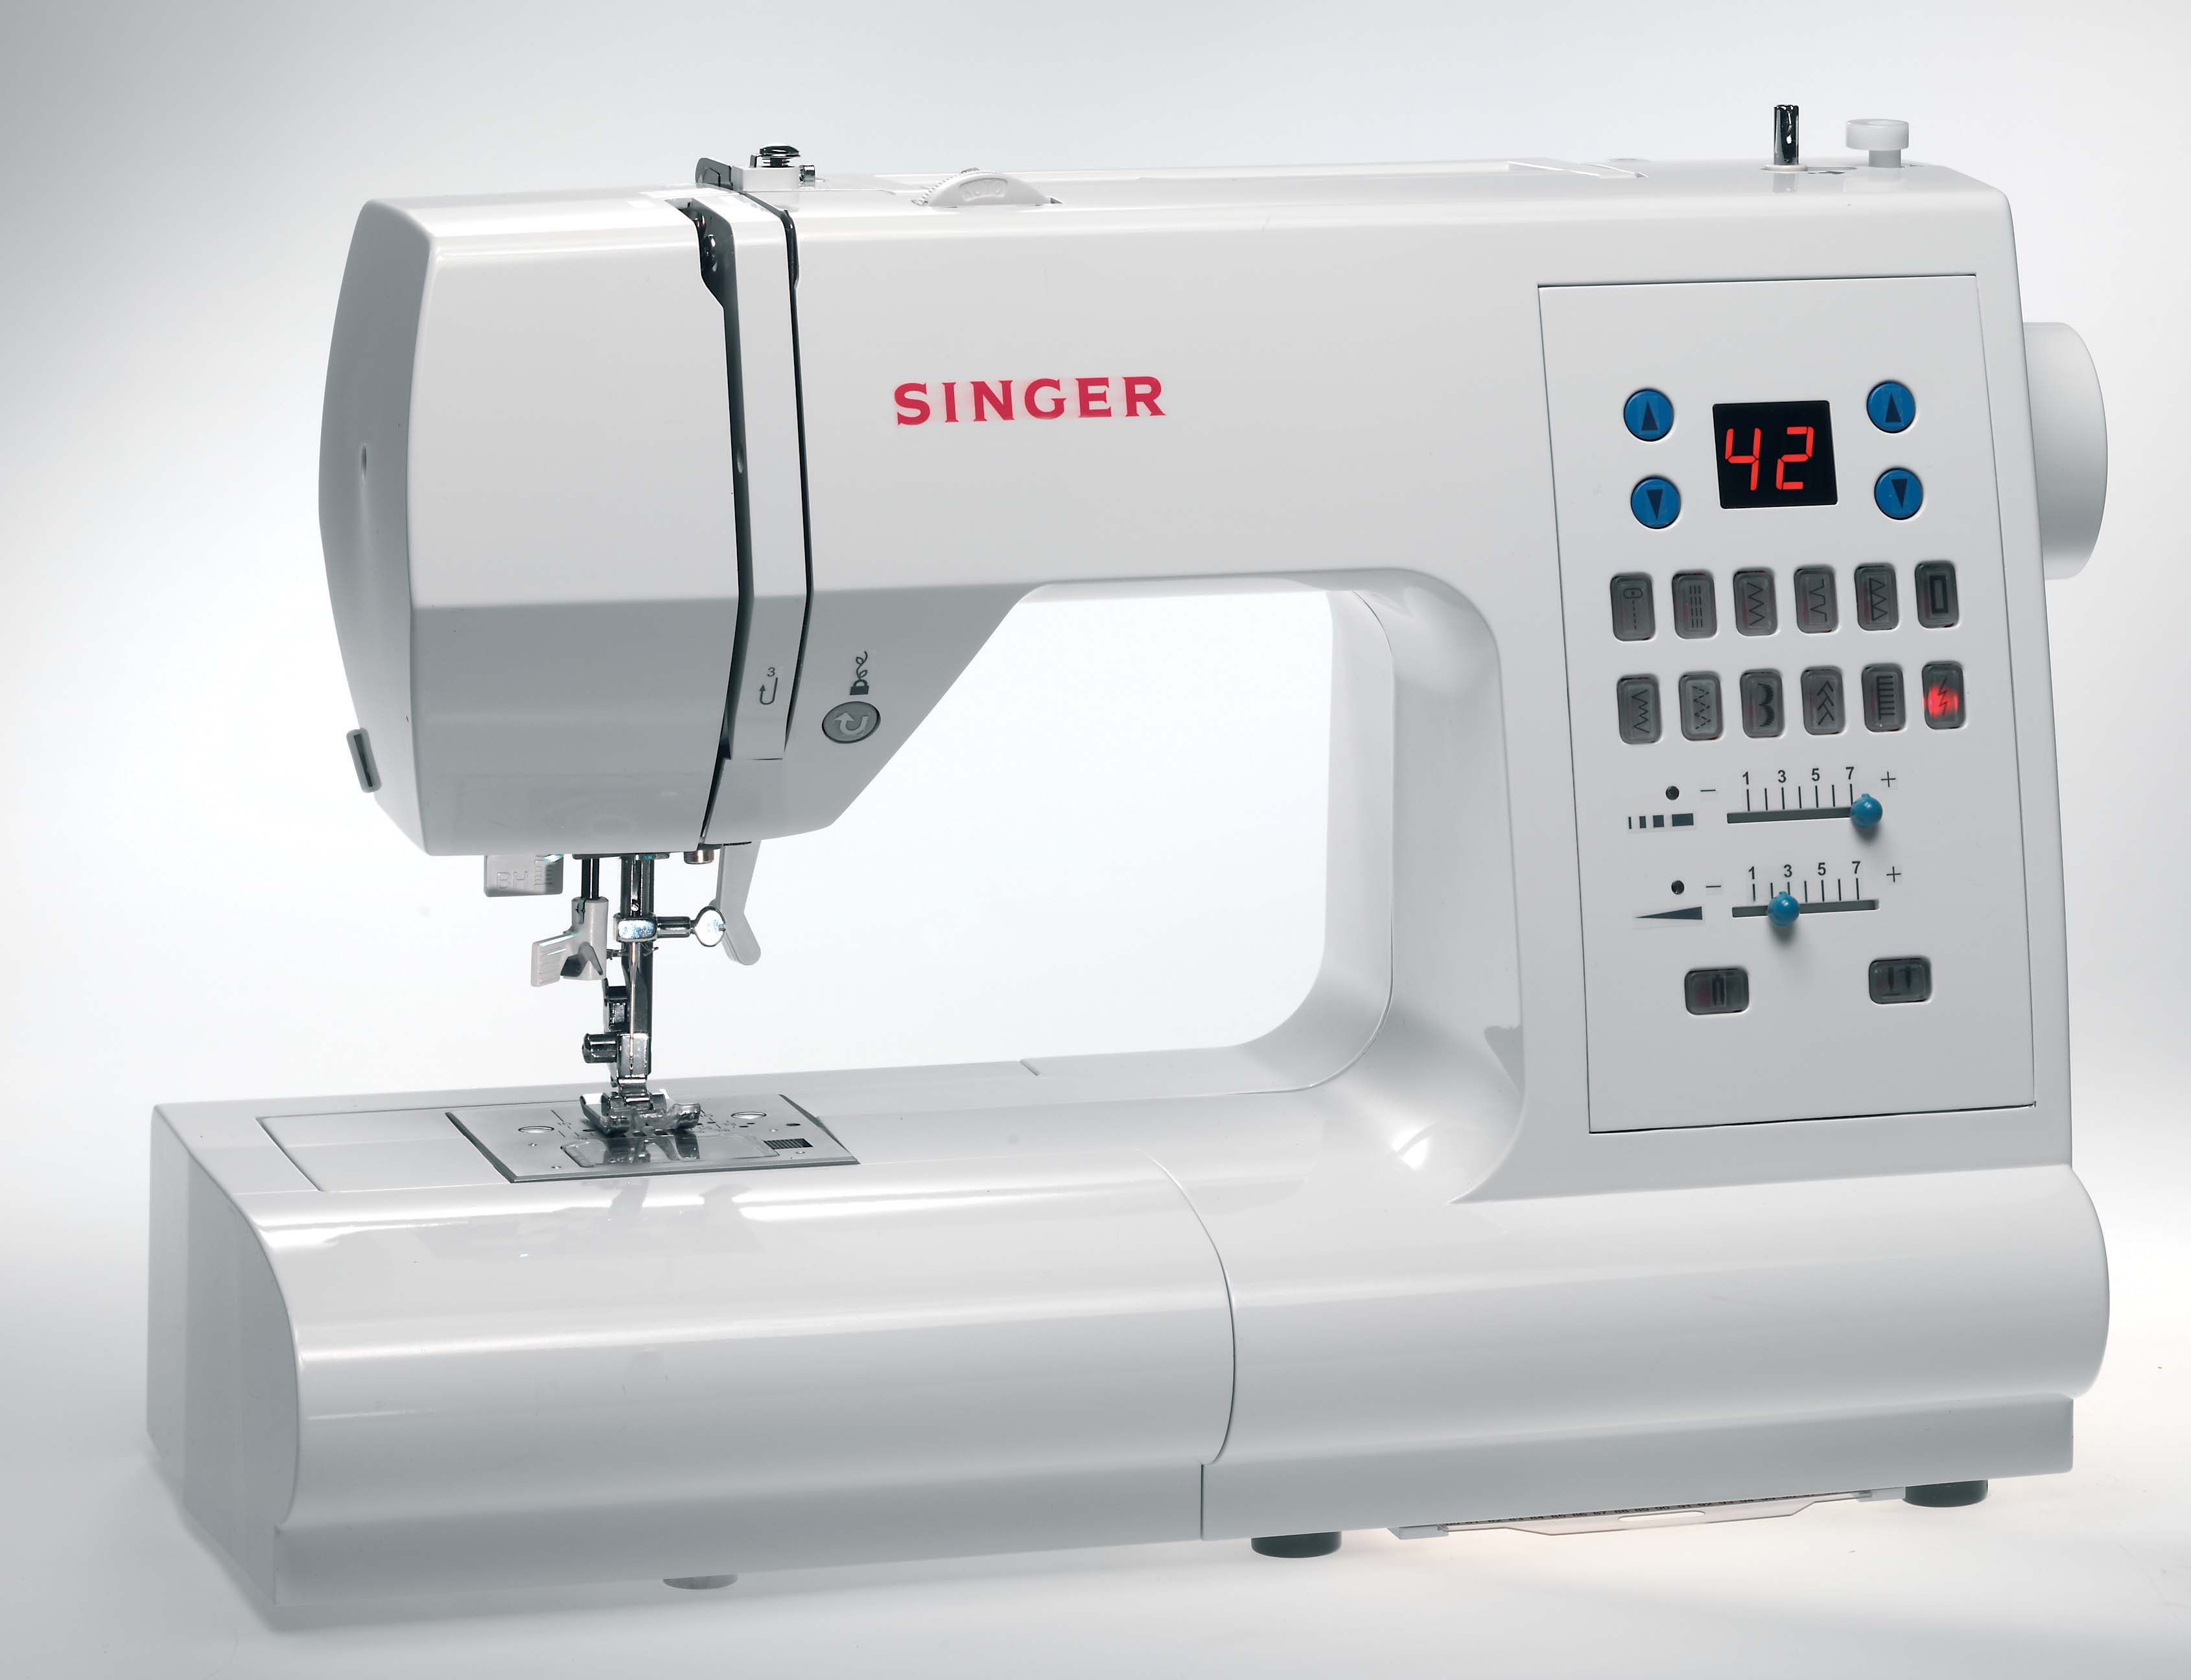 Singer fully electronic sewing machine w stitch